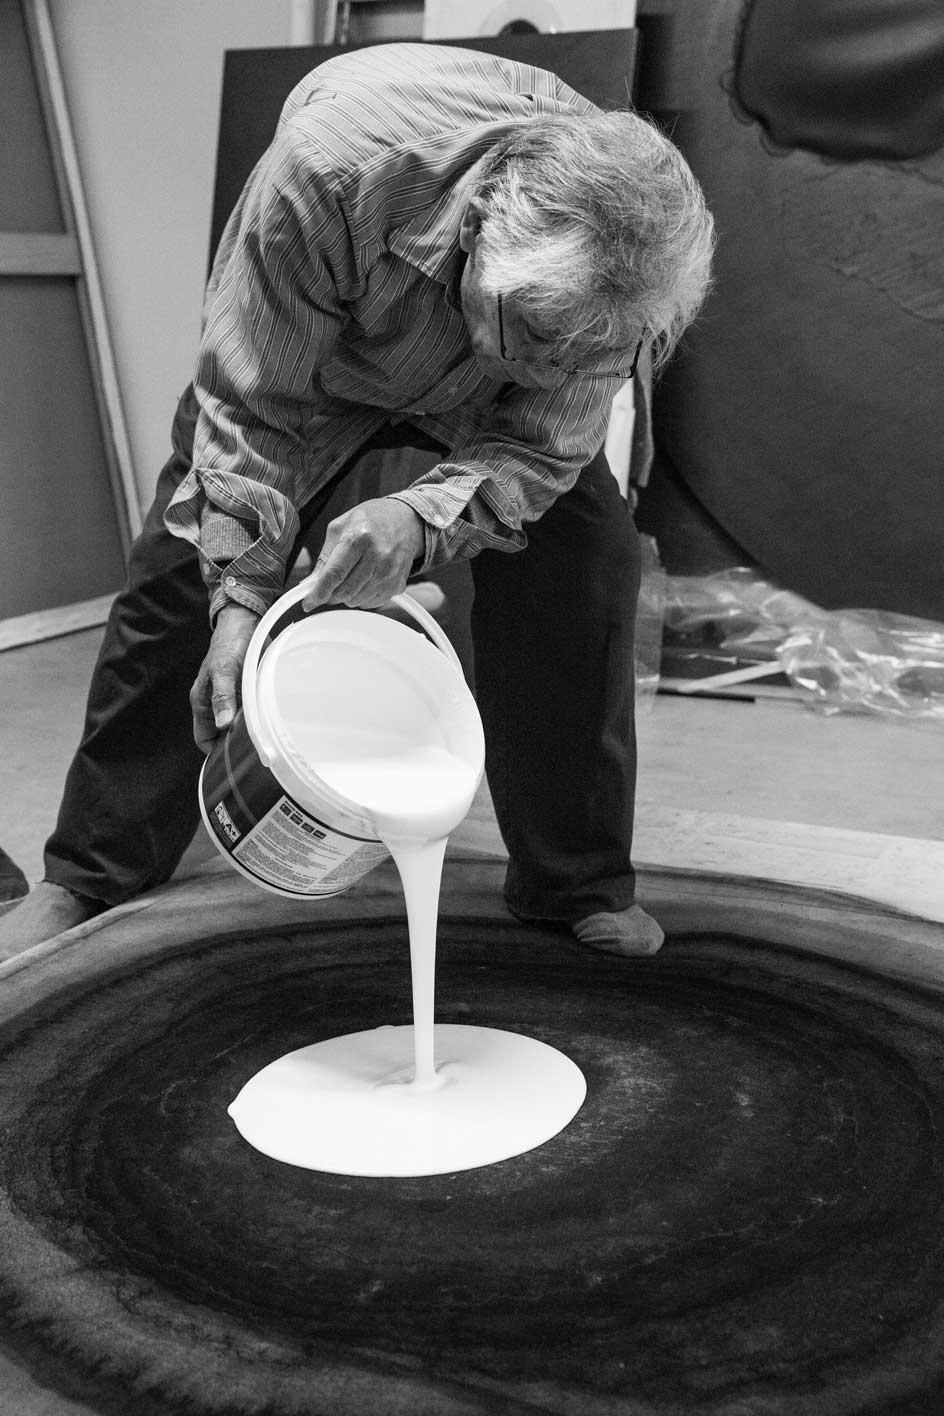 Portrait of Japanese artist Takesada Matsutani in the studio pouring vinyl glue onto a work in 2019 ahead of an exhibition at Hauser & Wirth Hong Kong.Photographer Michel Lunardelli